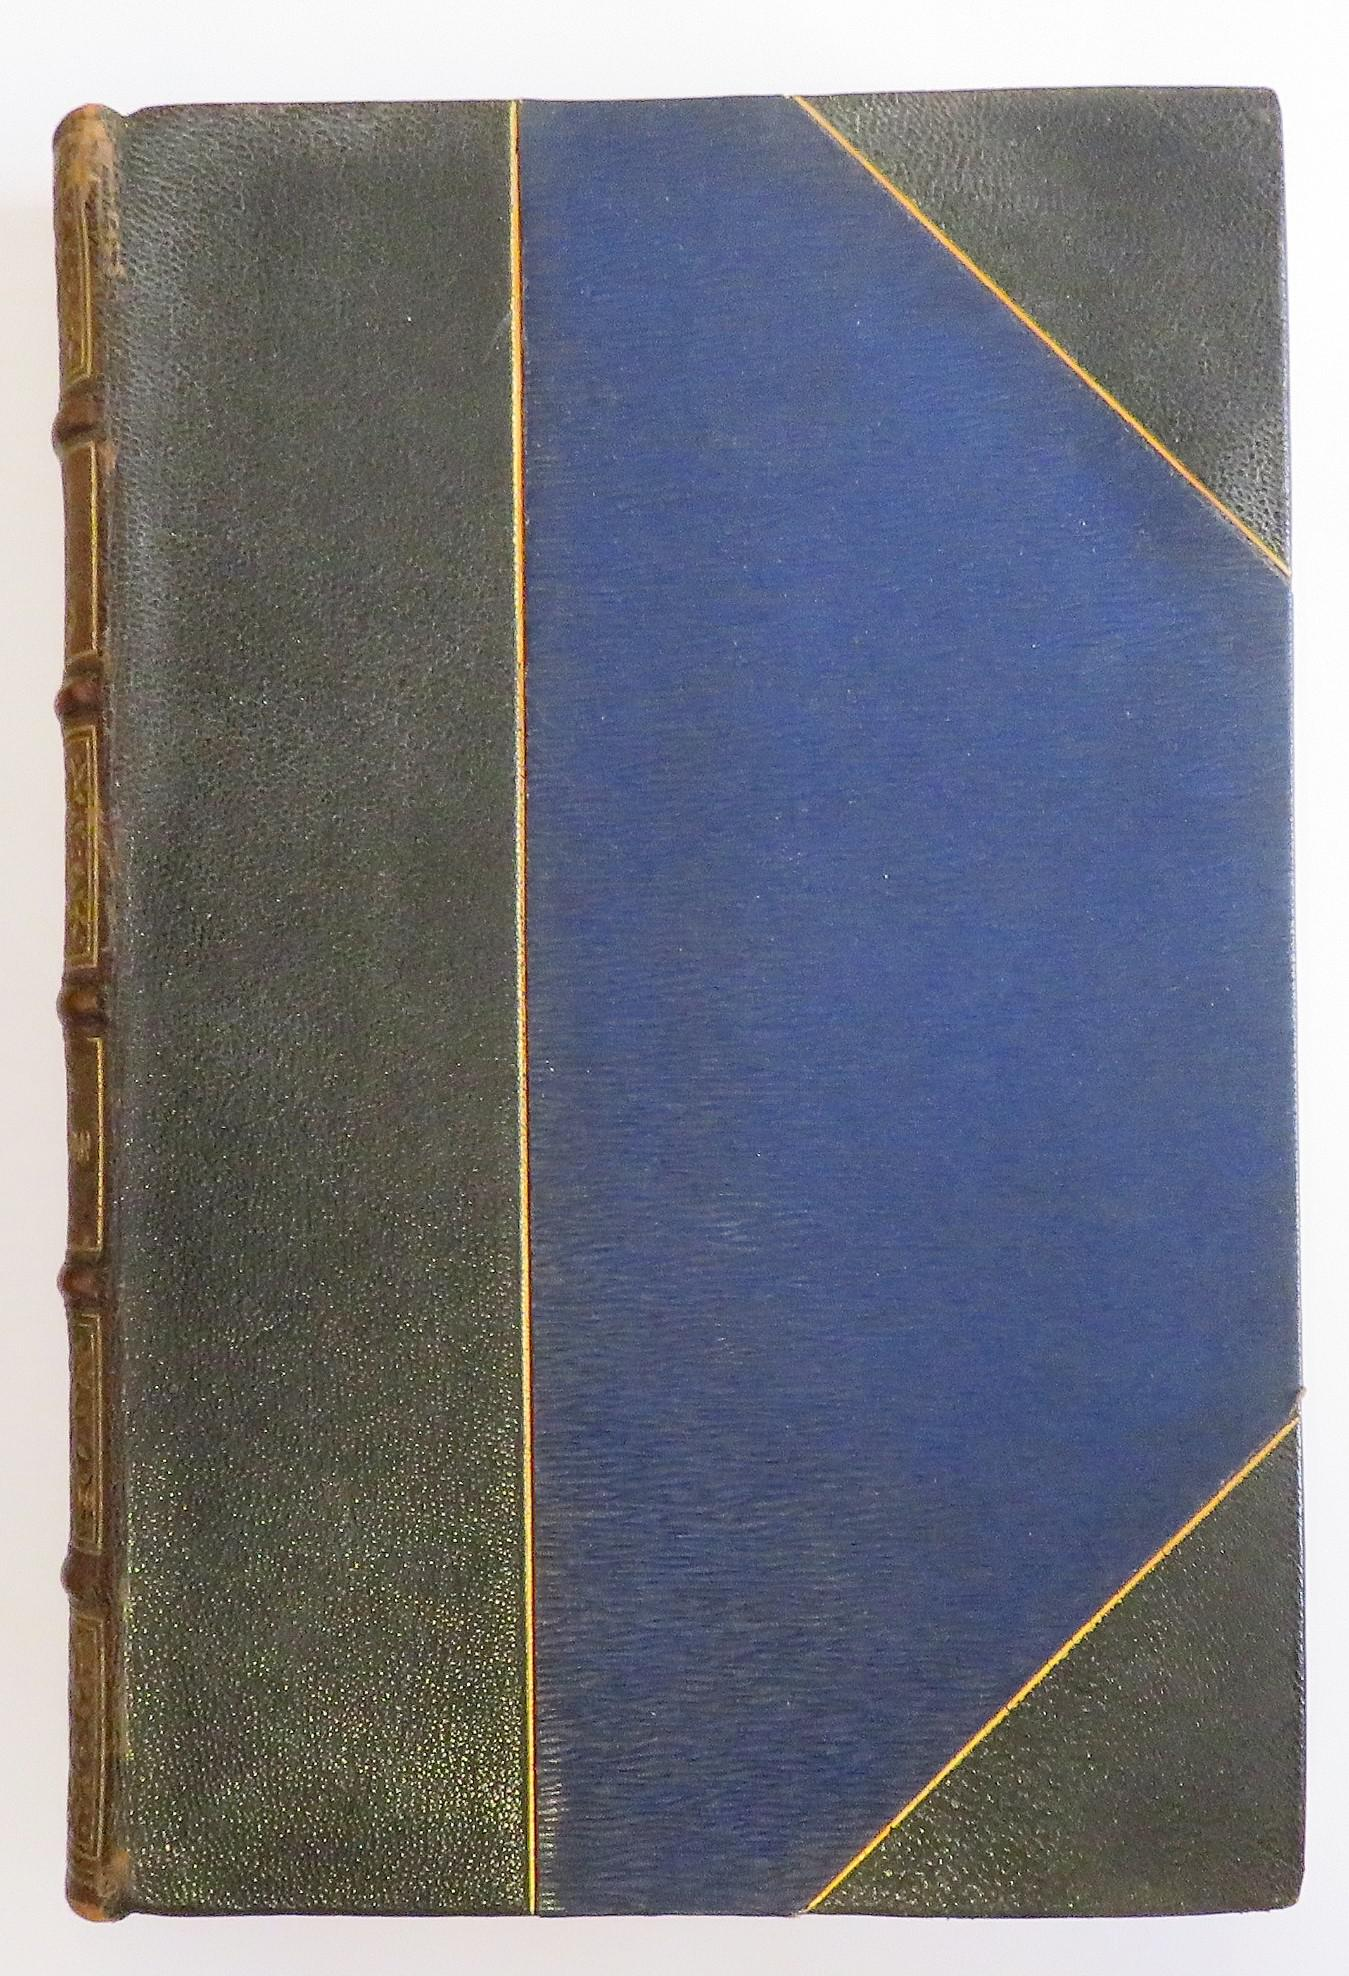 Memoirs Of Madame De Montespan in two volumes